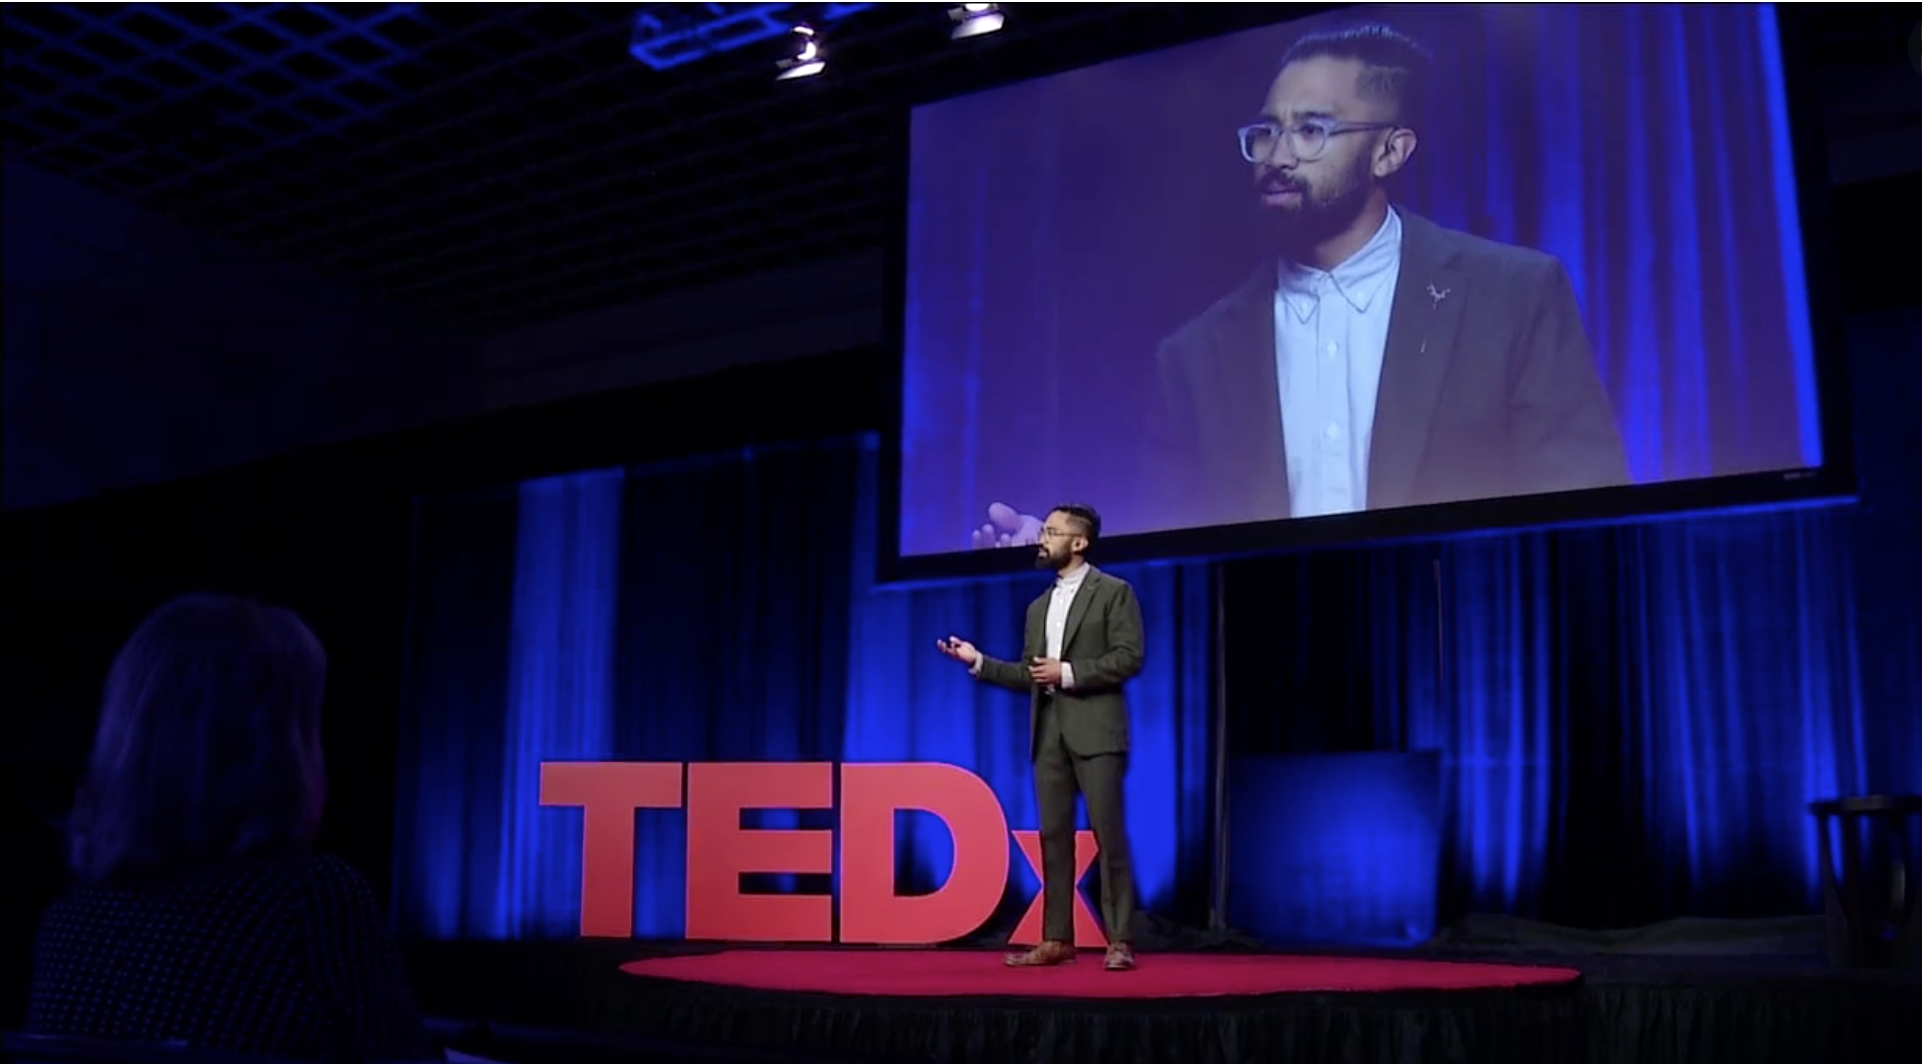 - Watch my Tedx talk.